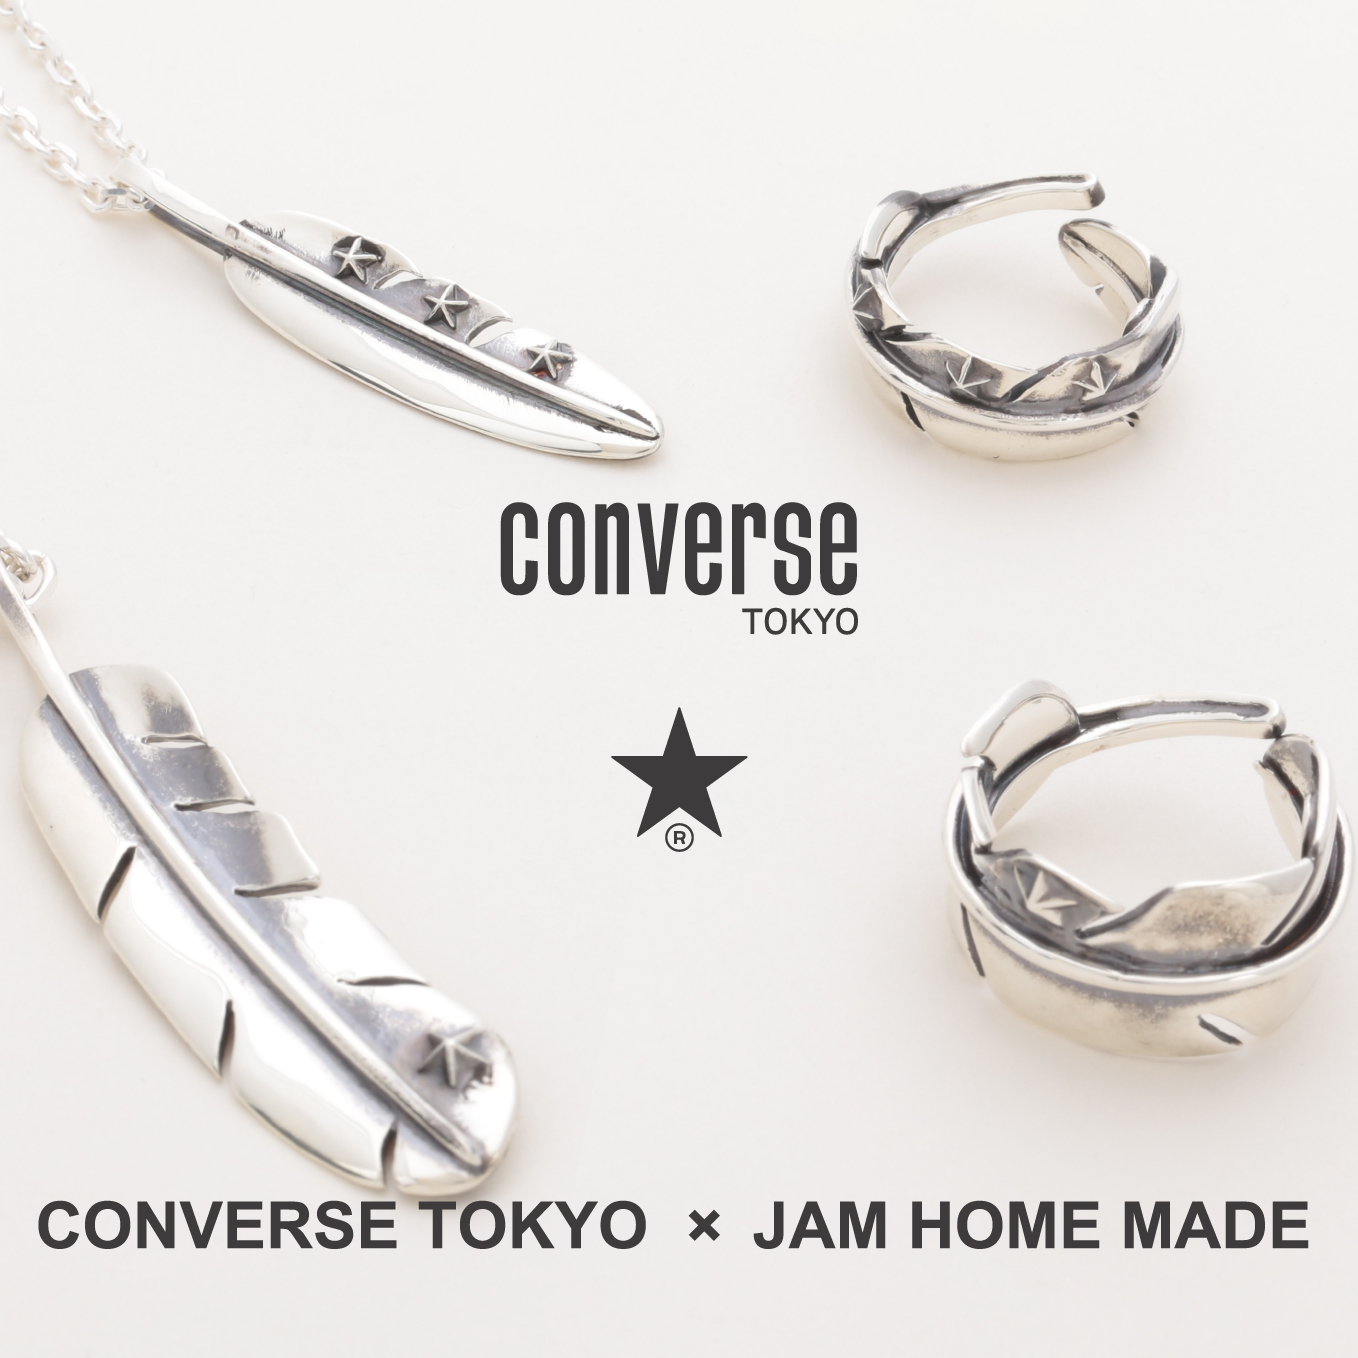 CONVERSE TOKYO × JAM HOME MADE COLLABORATION